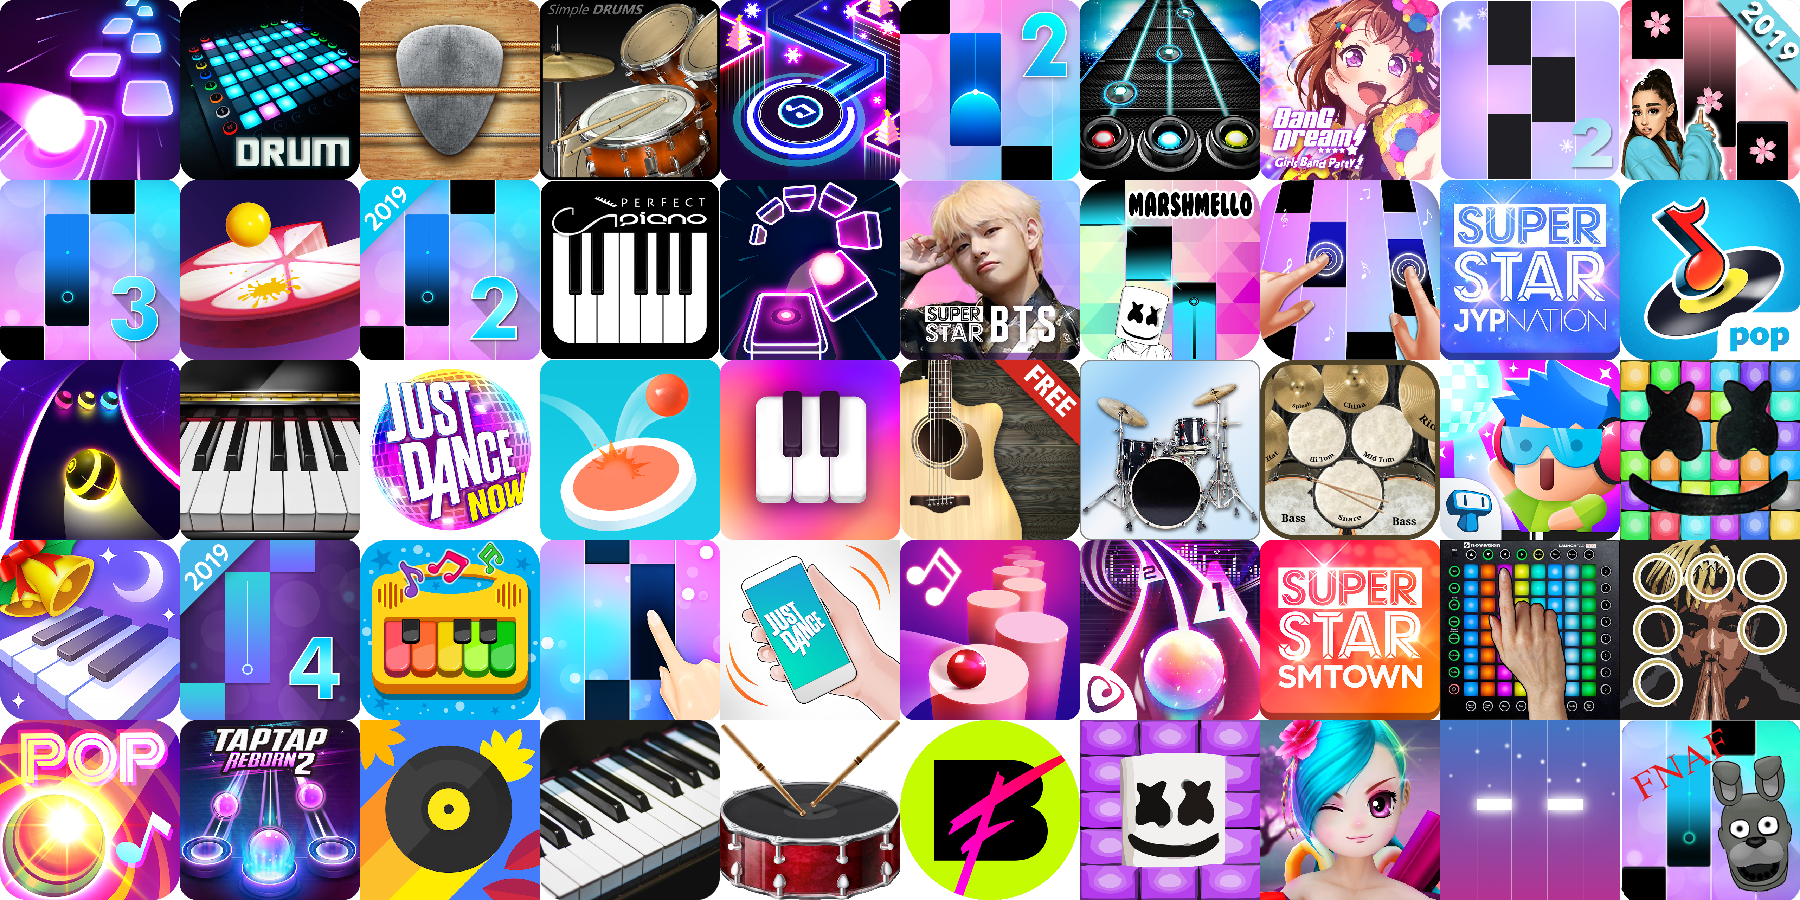 App icons of Top 50 mobile games in the US Play Store Game - Music Category